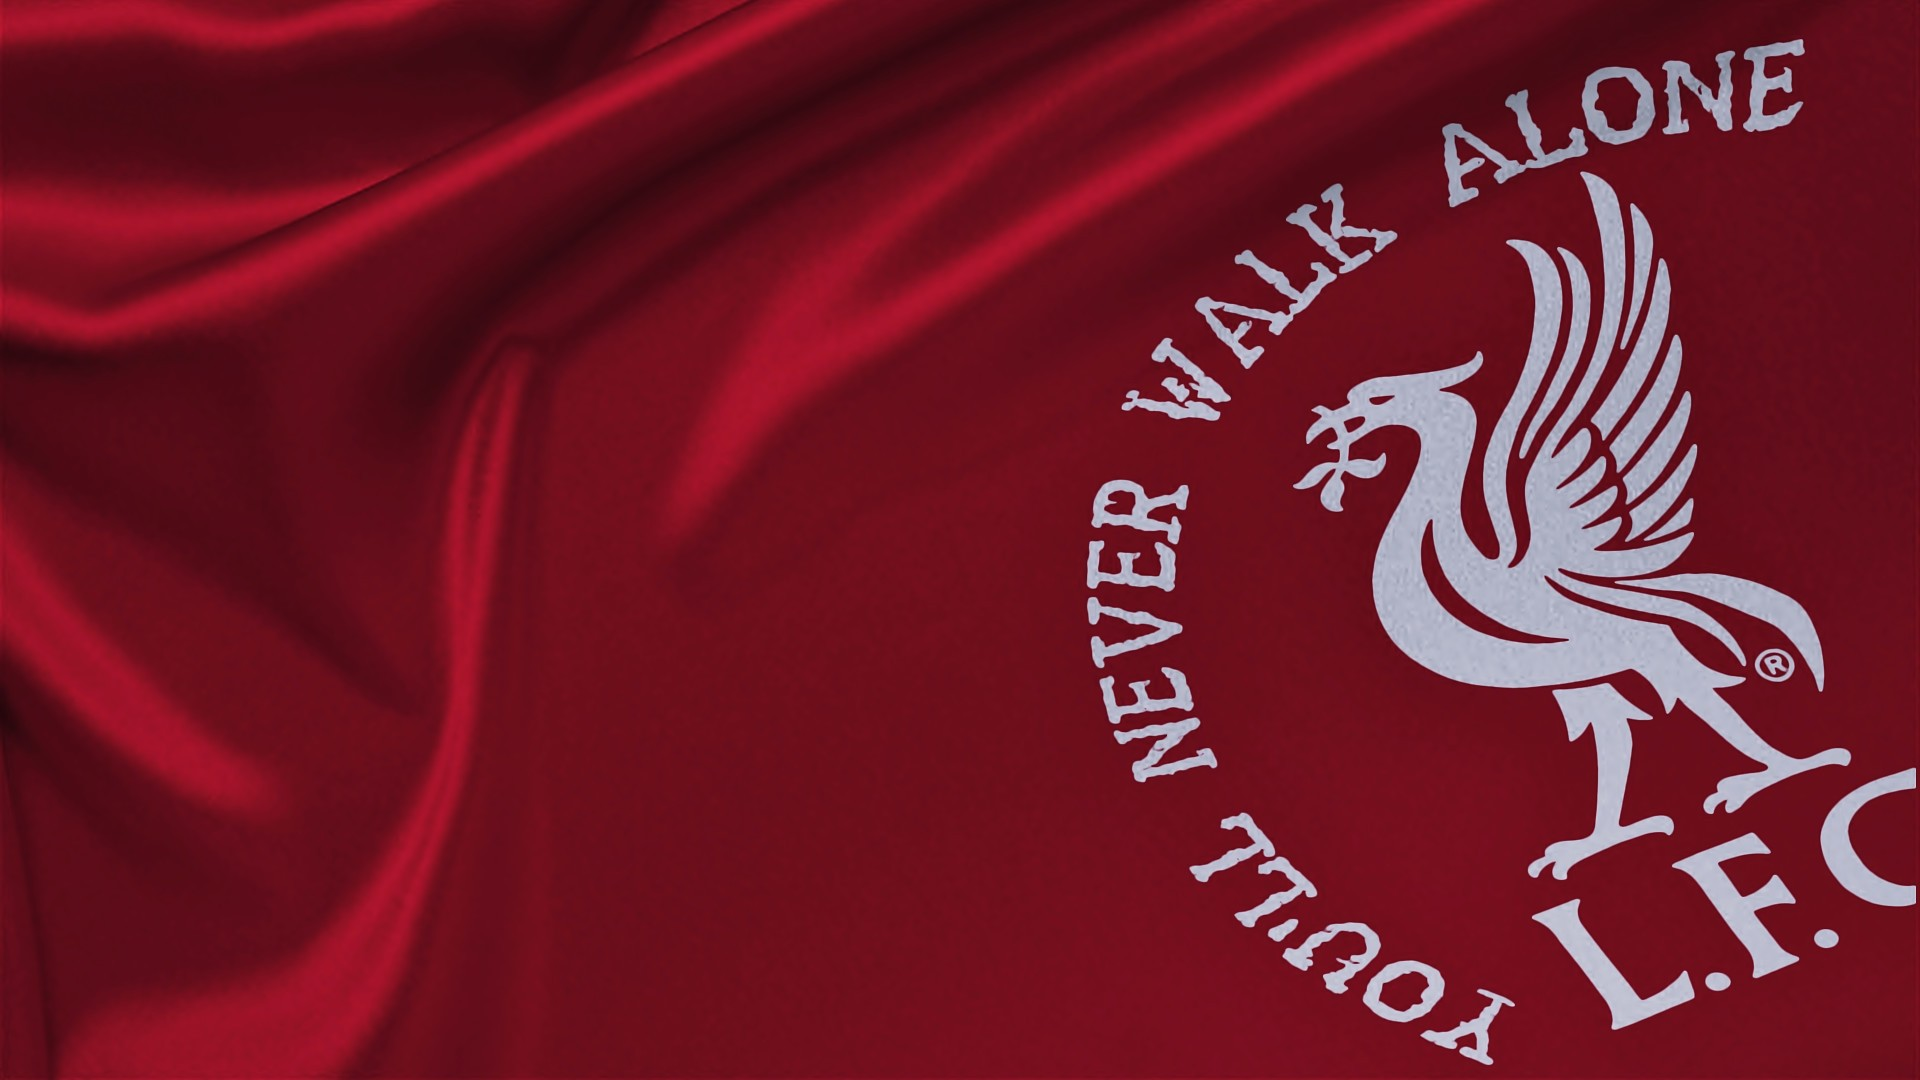 Liverpool Free Wallpaper and Background